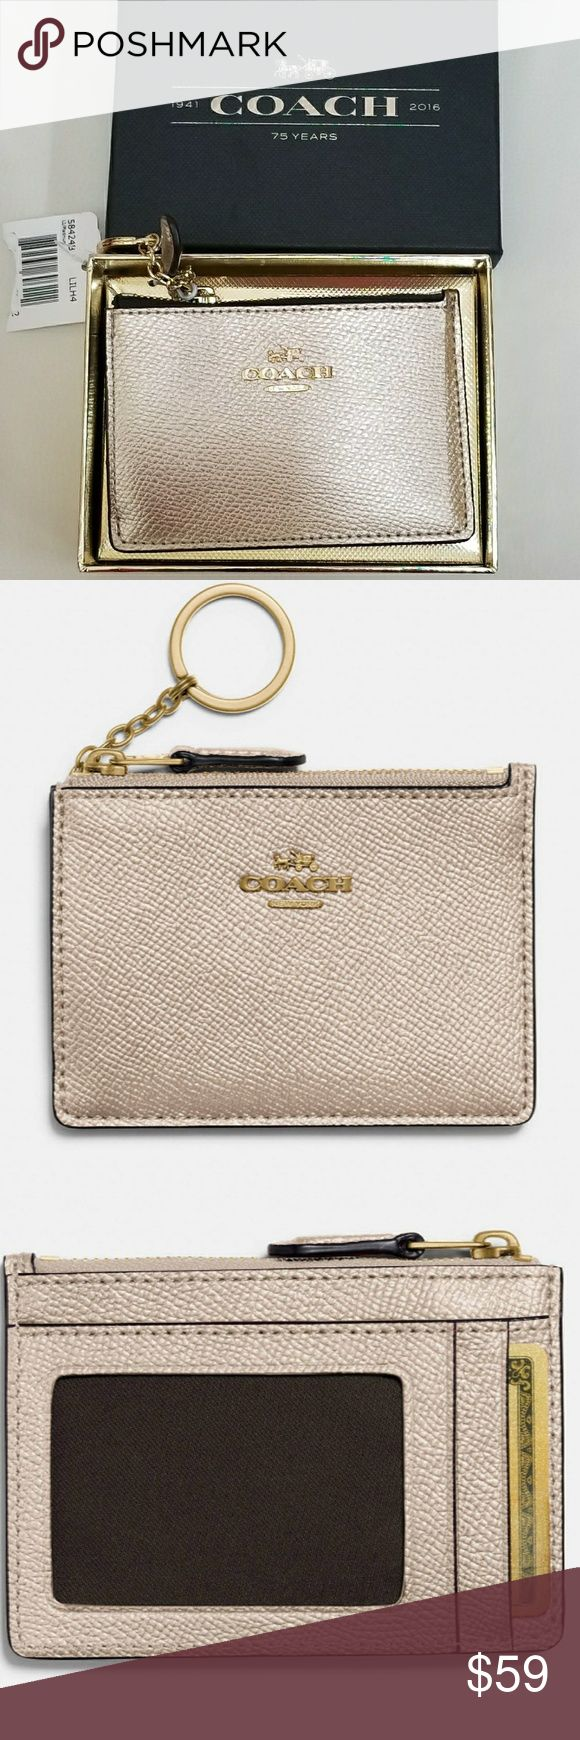 NWT Coach mini skinny ID case Women's skinny wallet New with tag Still in box Beautiful blush pink metallic Coach logo in gold  Perfect size to put quarters for laundry, license, credit card and cash Can be attached to your keys Coach Bags Wallets